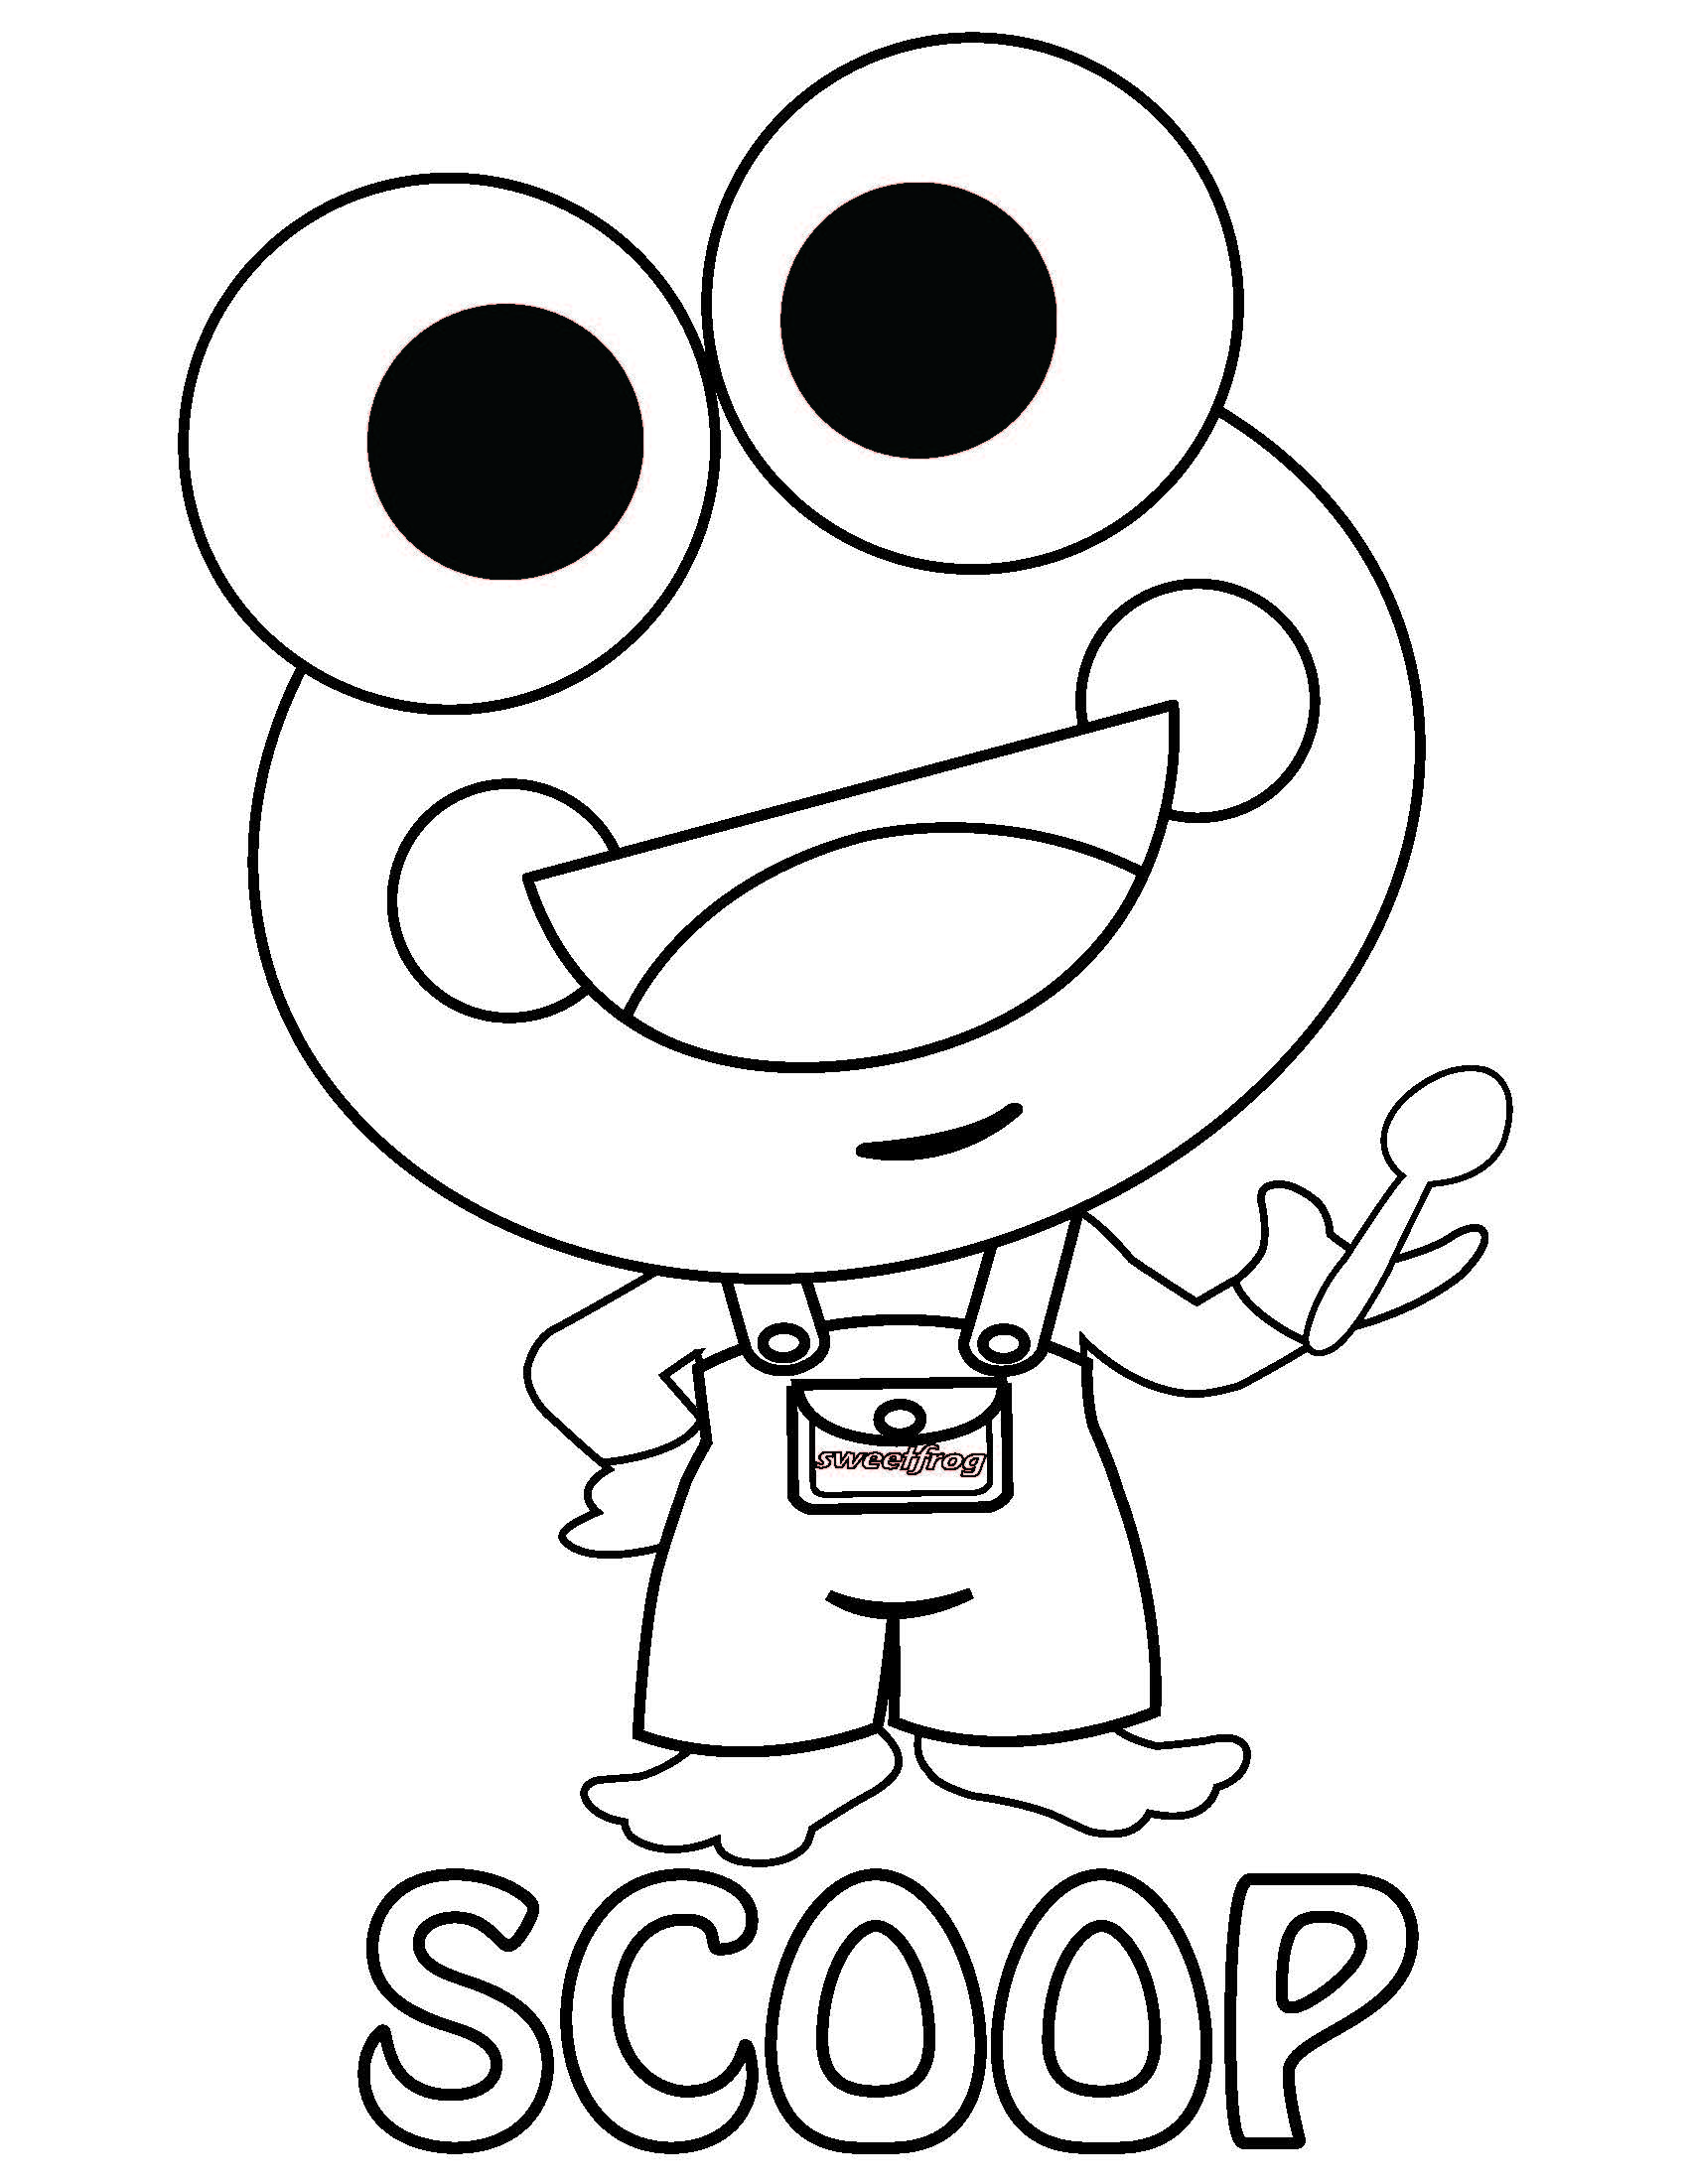 Menchies Coloring Pages - Ultra Coloring Pages | 2200x1700